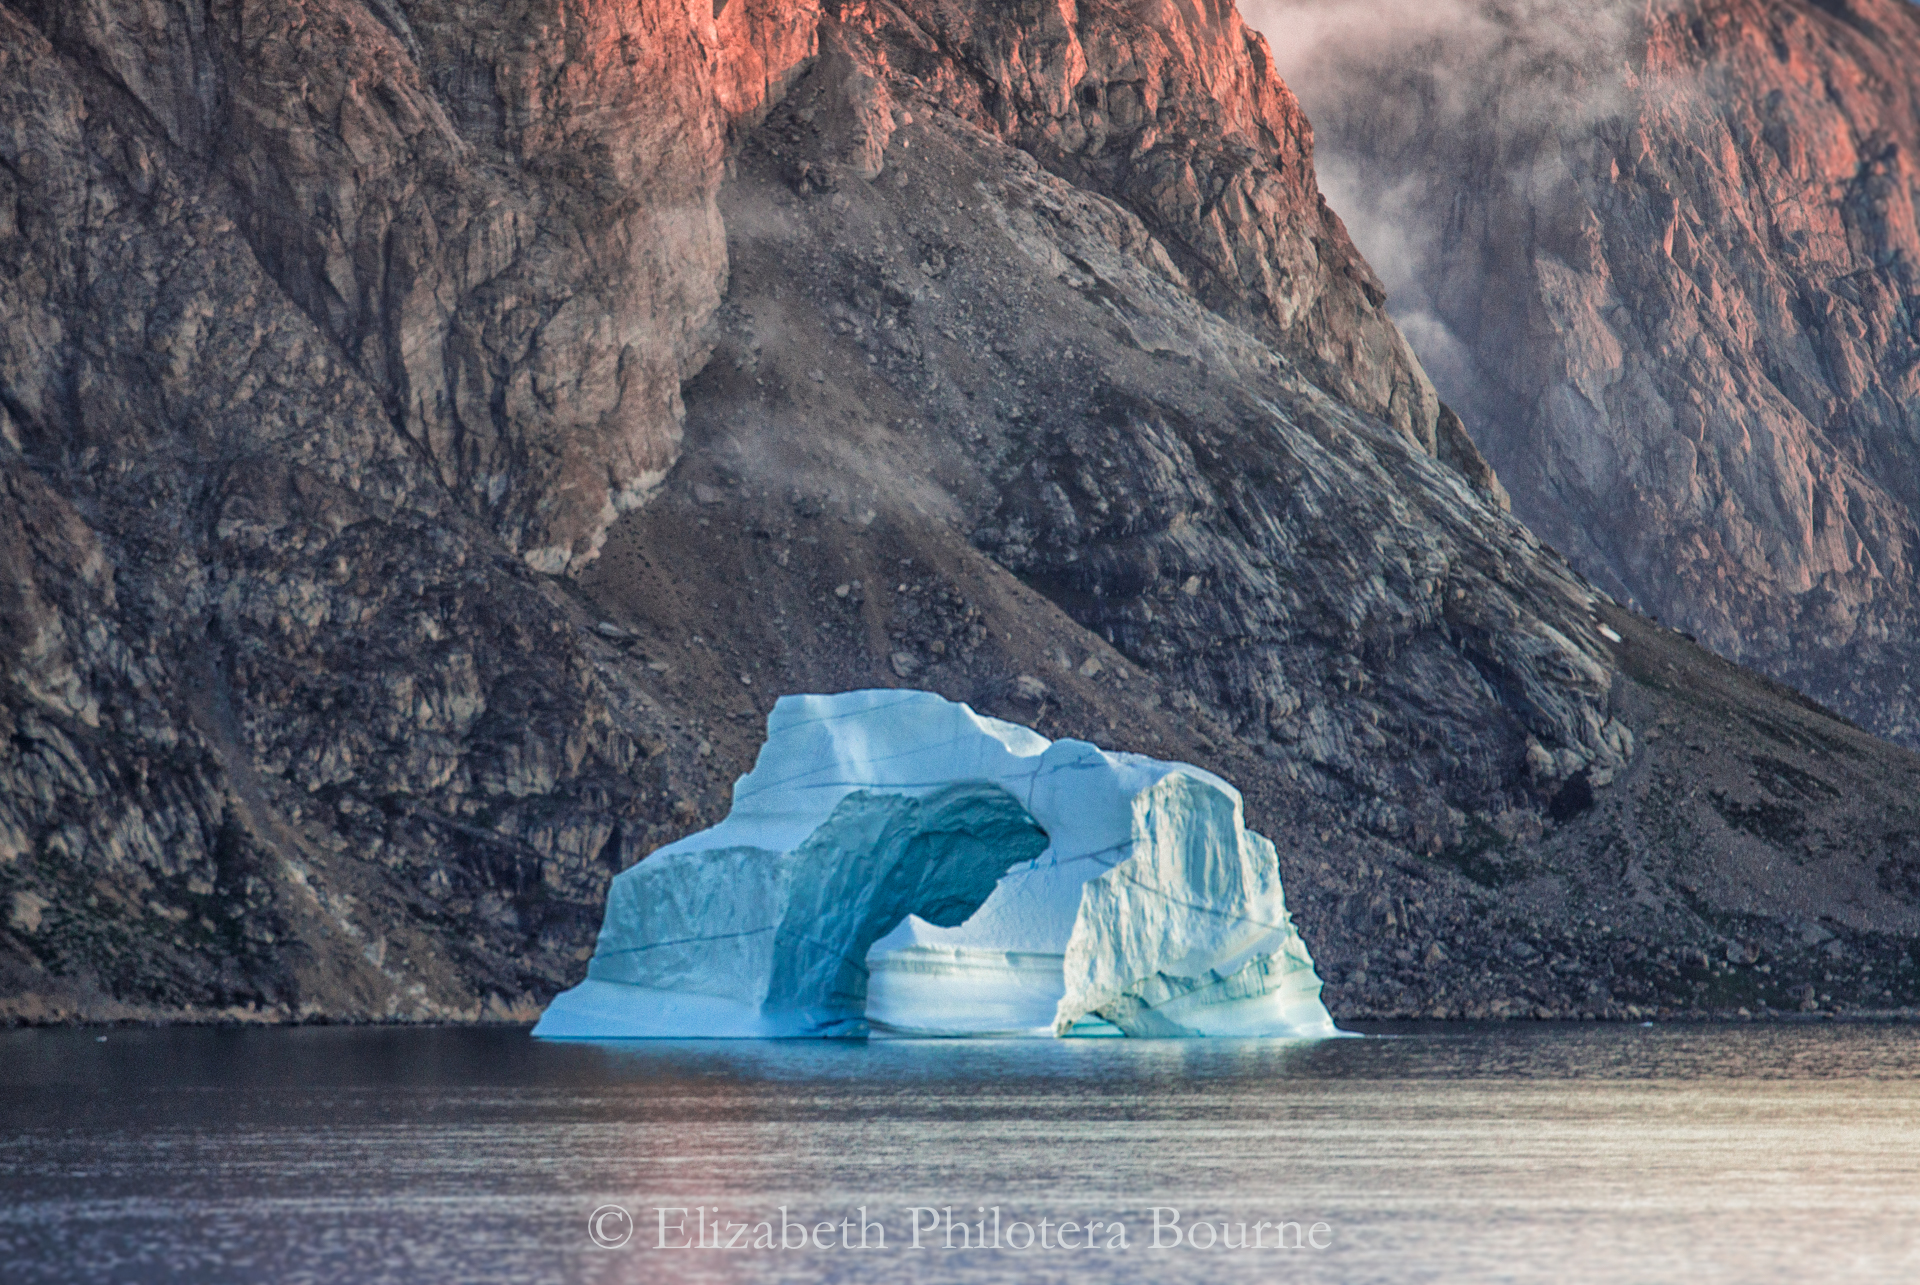 Floating blue iceberg against rocky mountainside with low clouds